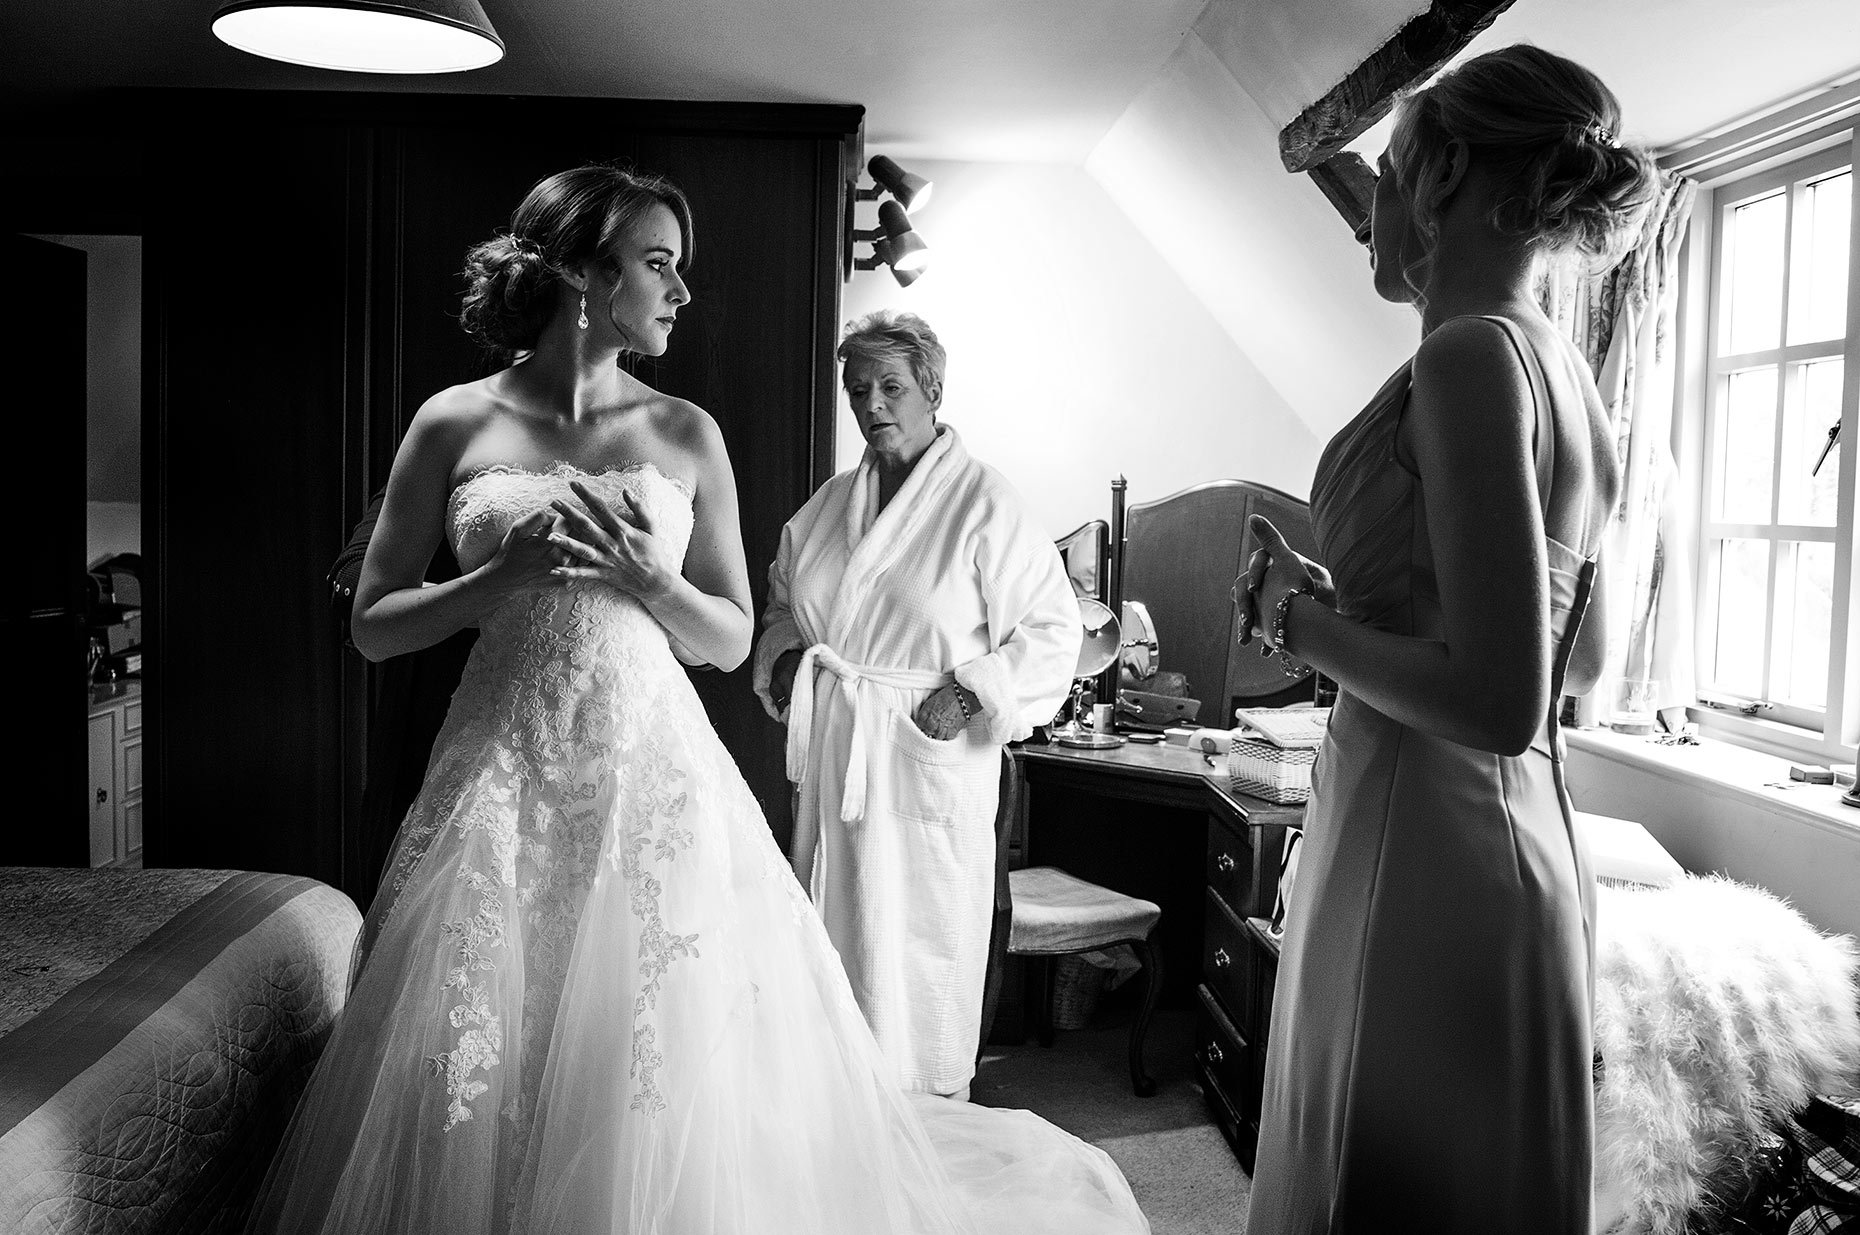 024Bride-Preparations-Hambleton-Rutland